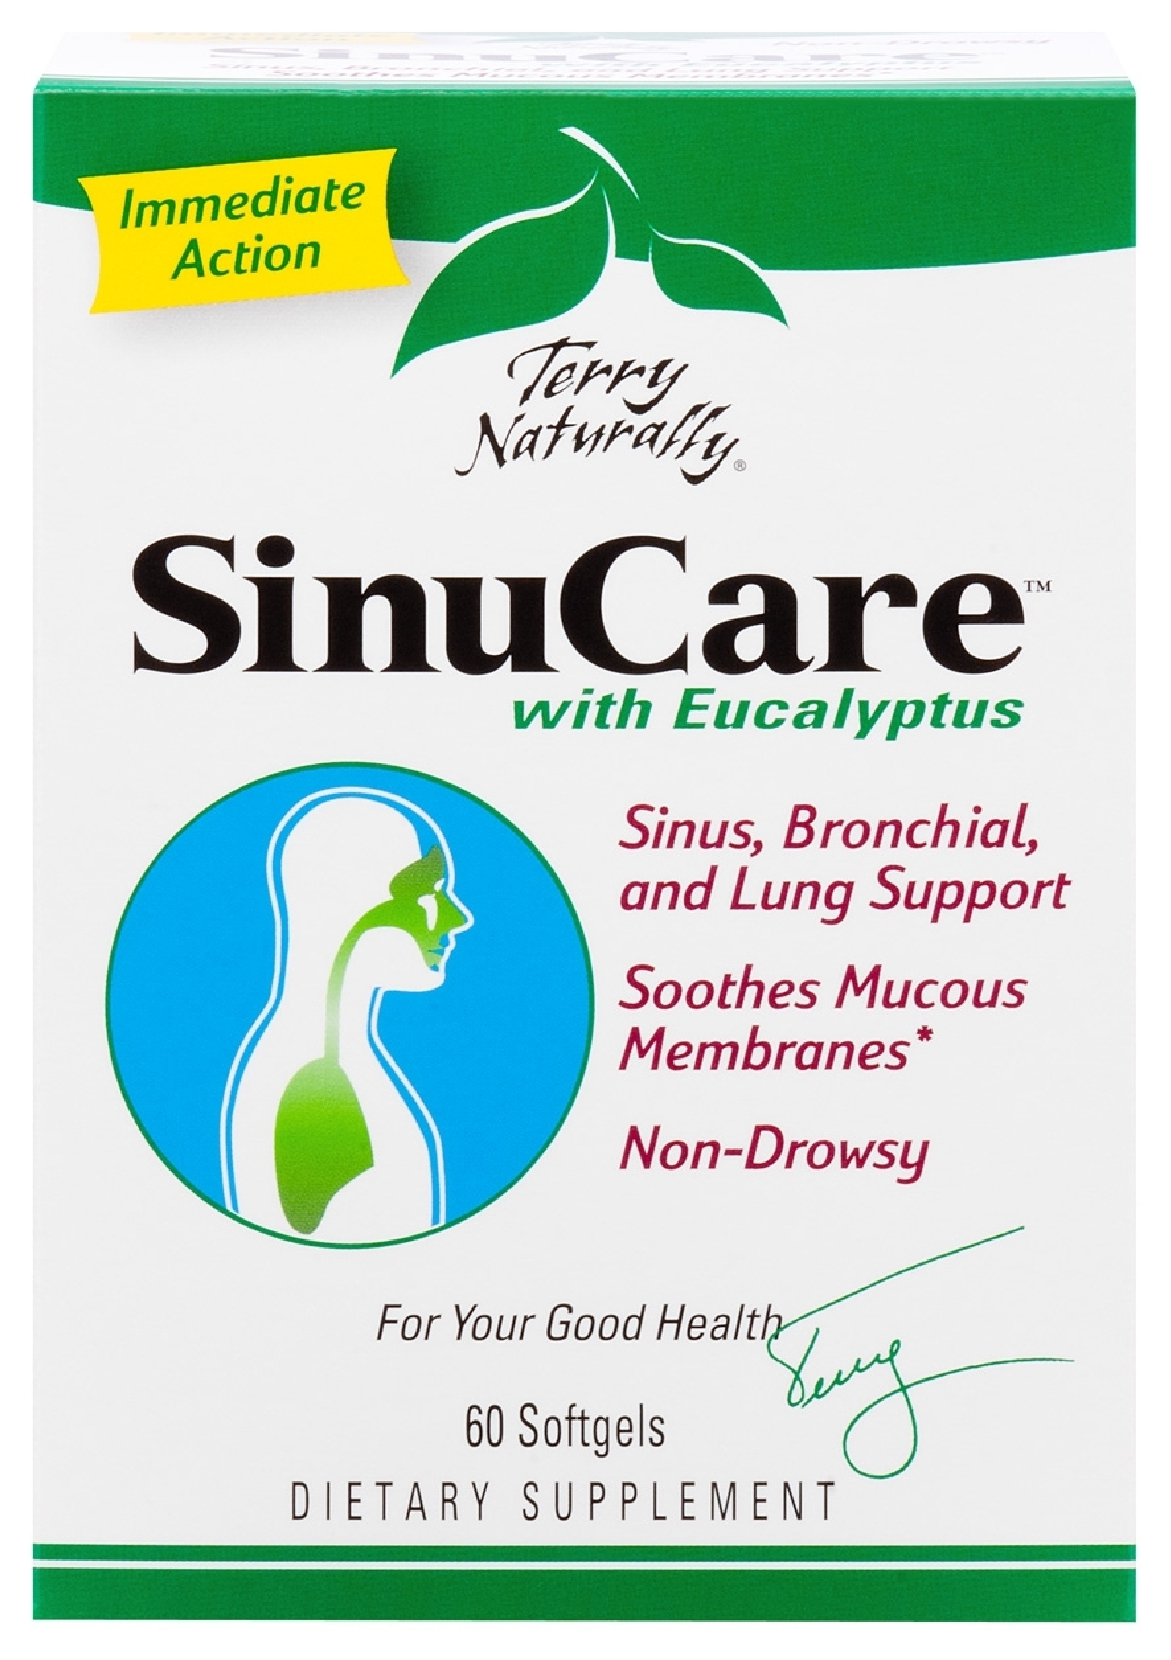 Terry Naturally SinuCare with Eucalyptus 60 sgels by EuroPharma